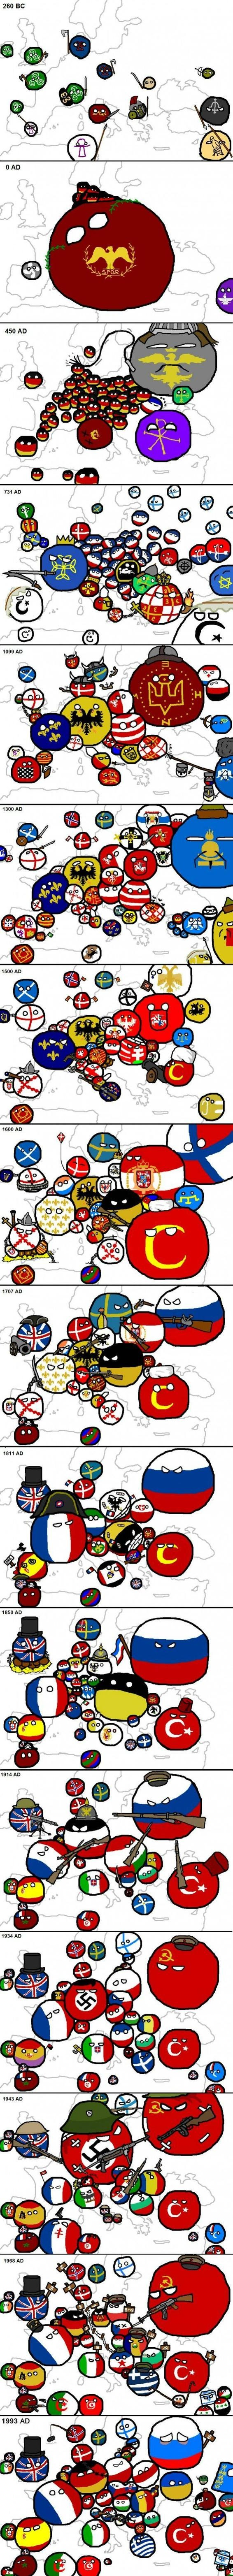 Europe history. Feel free to make your own Europe of 2020 predictions in the comment section.. <-- Europe 2020 Let it rage